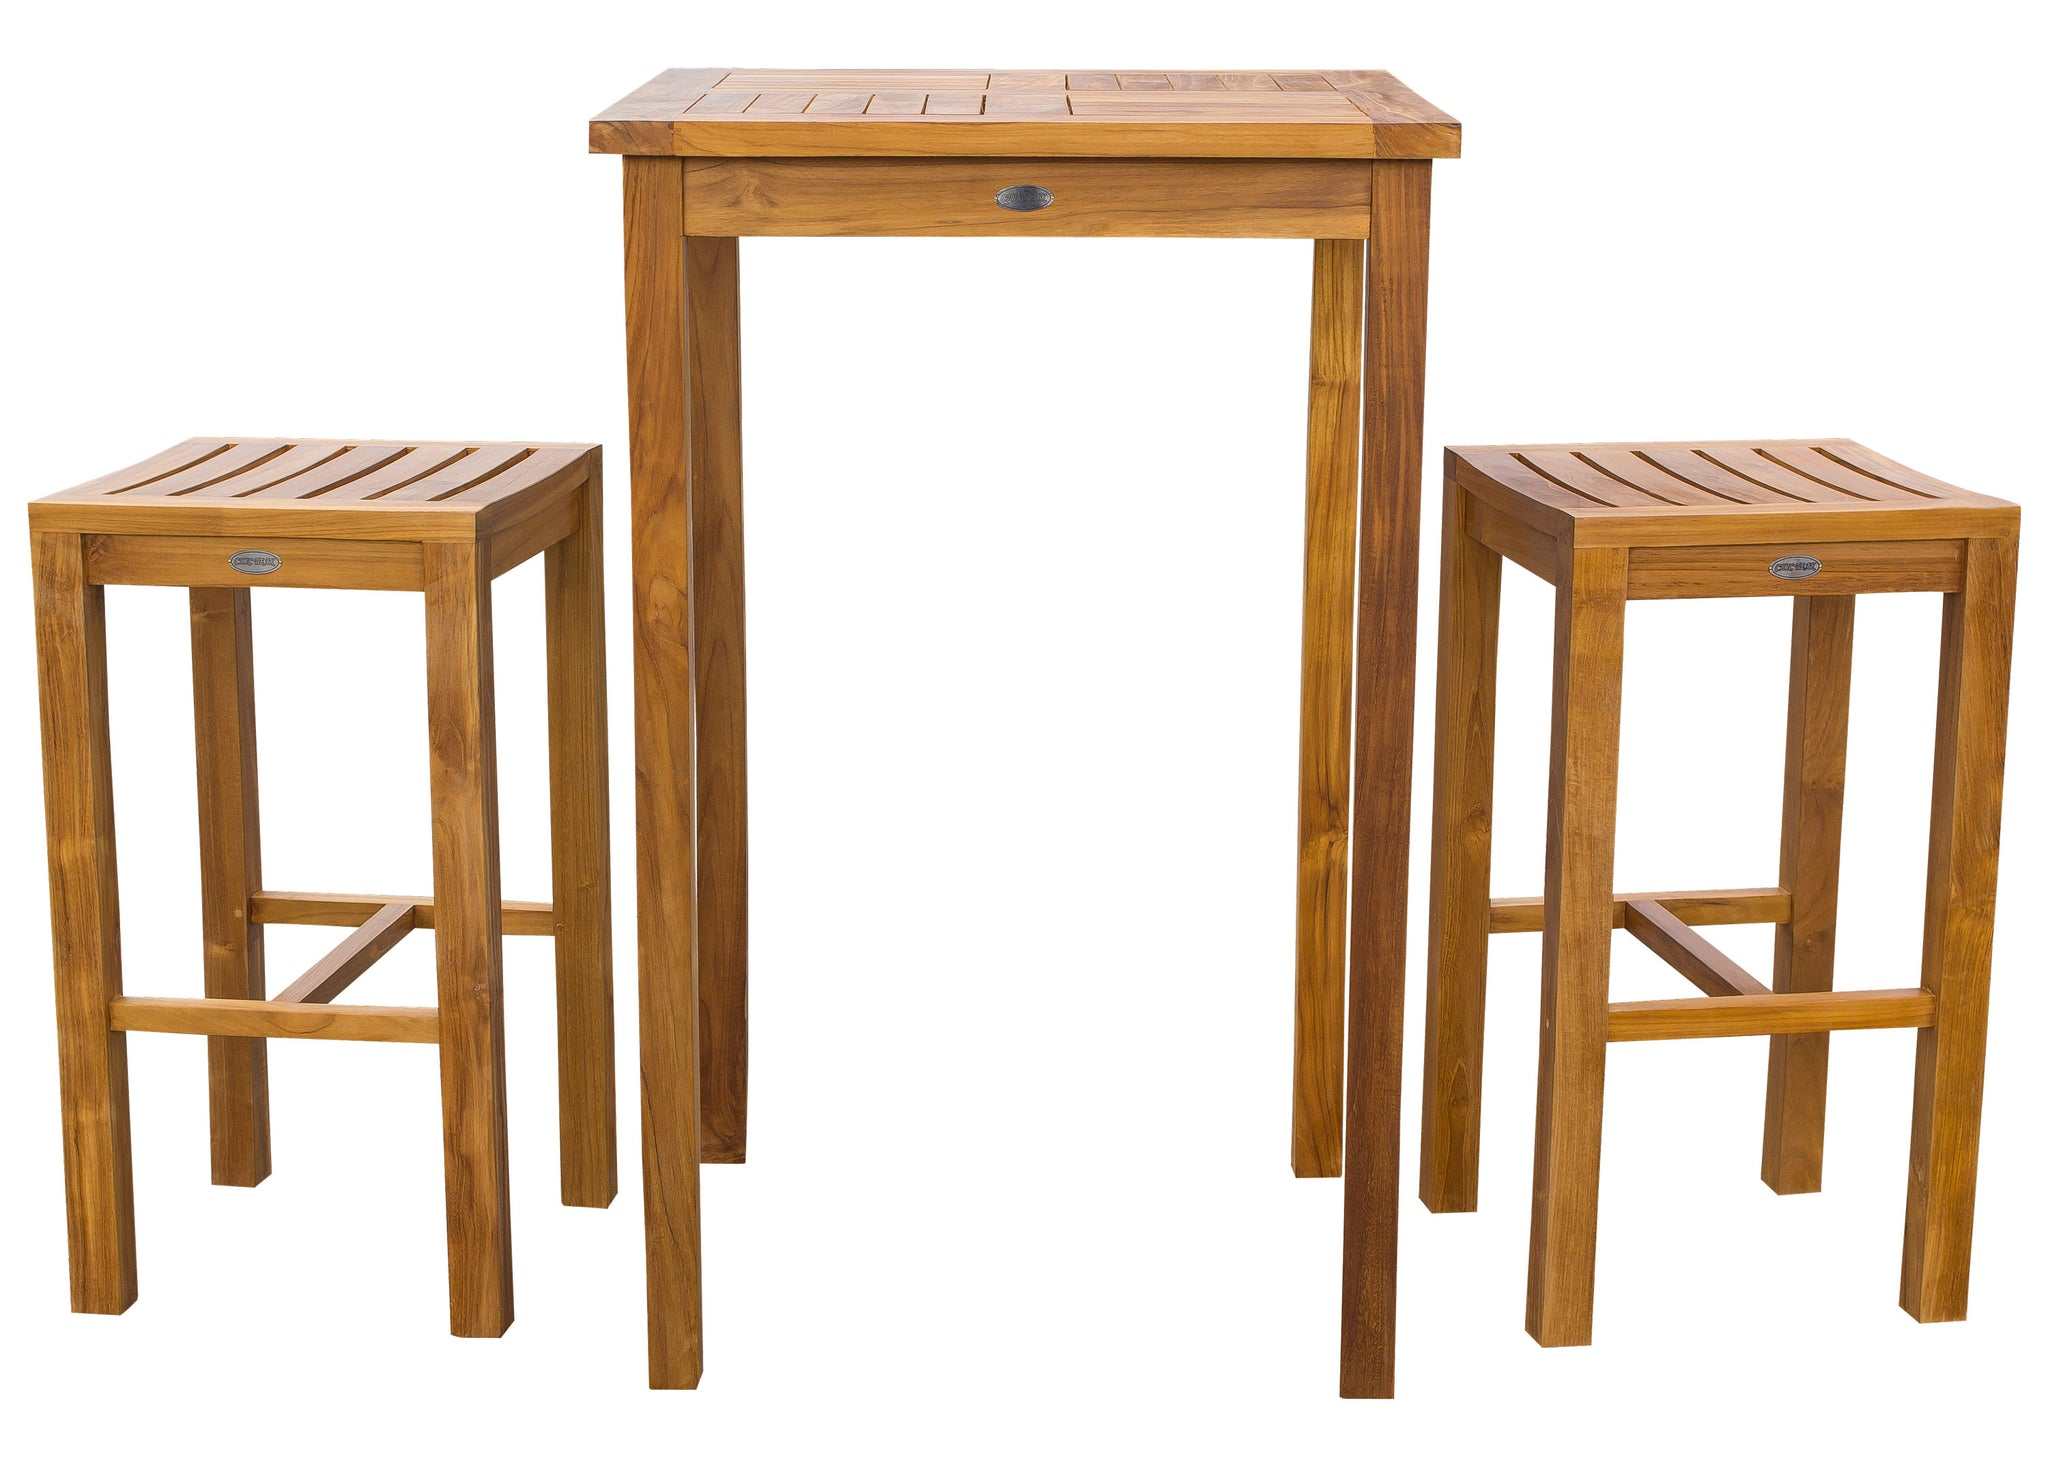 Stupendous 3 Piece Teak Wood Havana Small Patio Bistro Bar Set With 27 Square Table 2 Barstools Theyellowbook Wood Chair Design Ideas Theyellowbookinfo